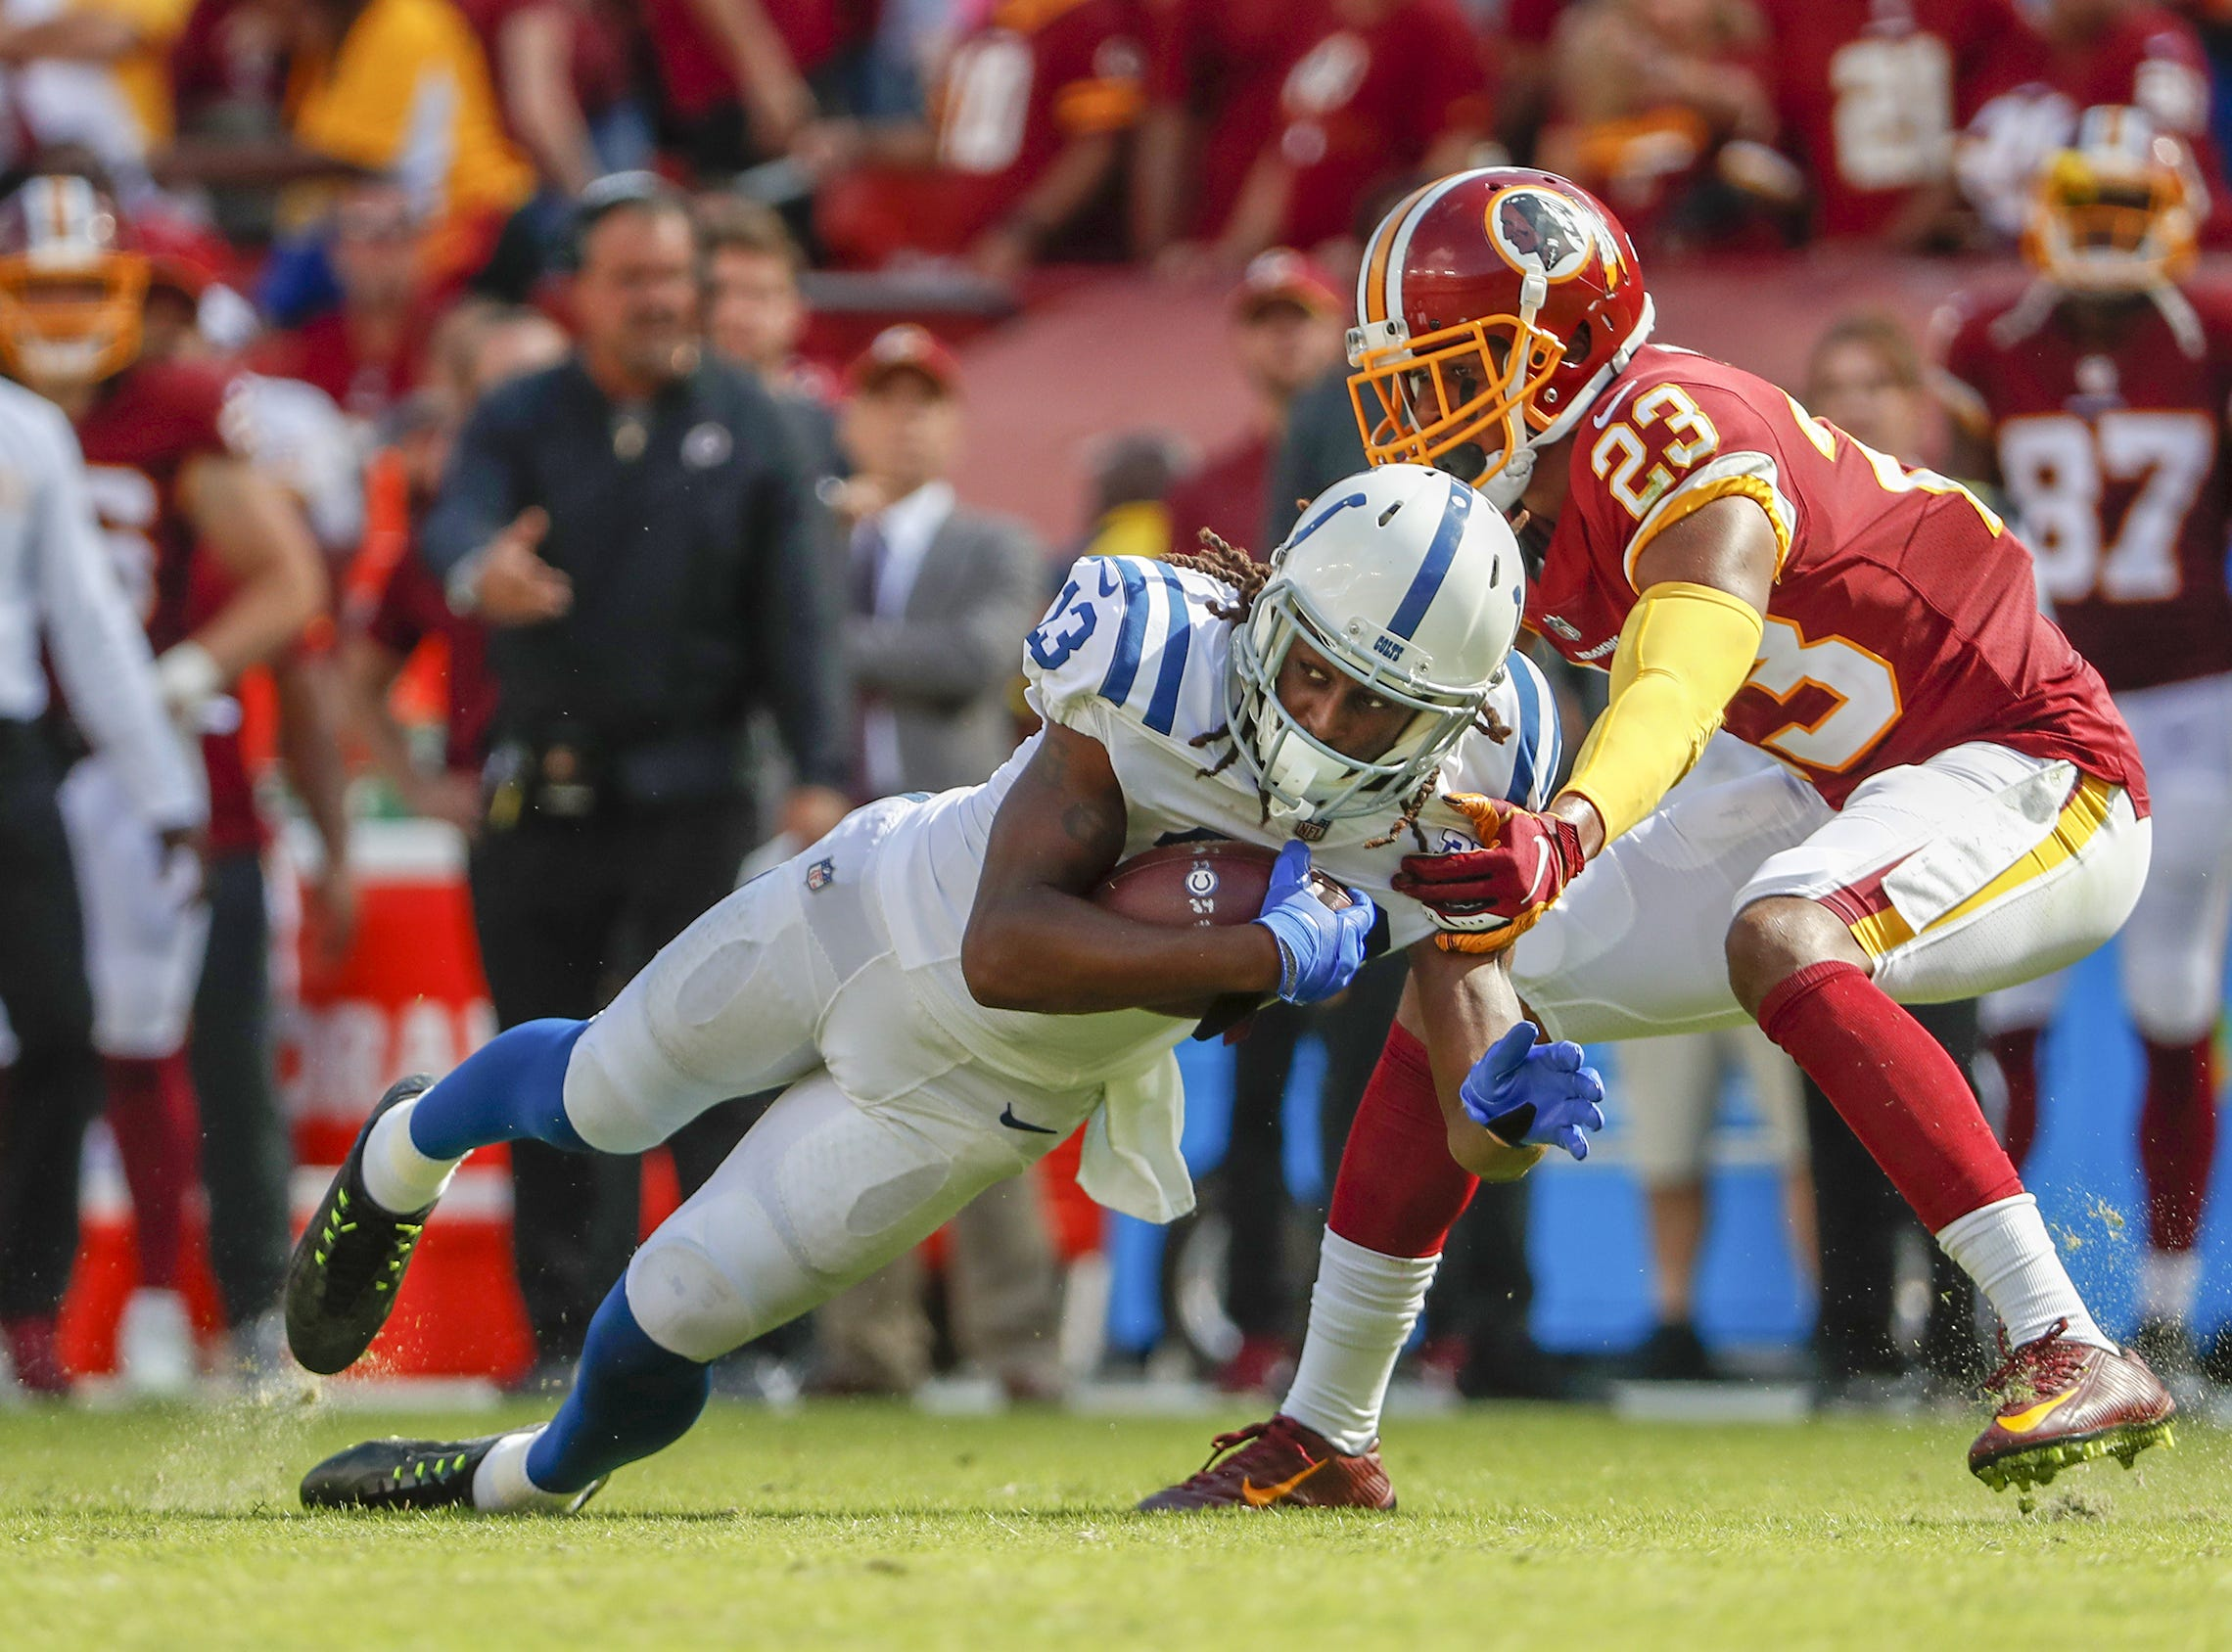 Indianapolis Colts wide receiver T.Y. Hilton (13) makes an effort for more yardage as he's contacted by Washington Redskins cornerback Quinton Dunbar (23) during second half action. The Indianapolis Colts play the Washington Redskins at FedEx Field in Landover, MD., Sunday, Sept. 16, 2018. Colts won the game 21-9.